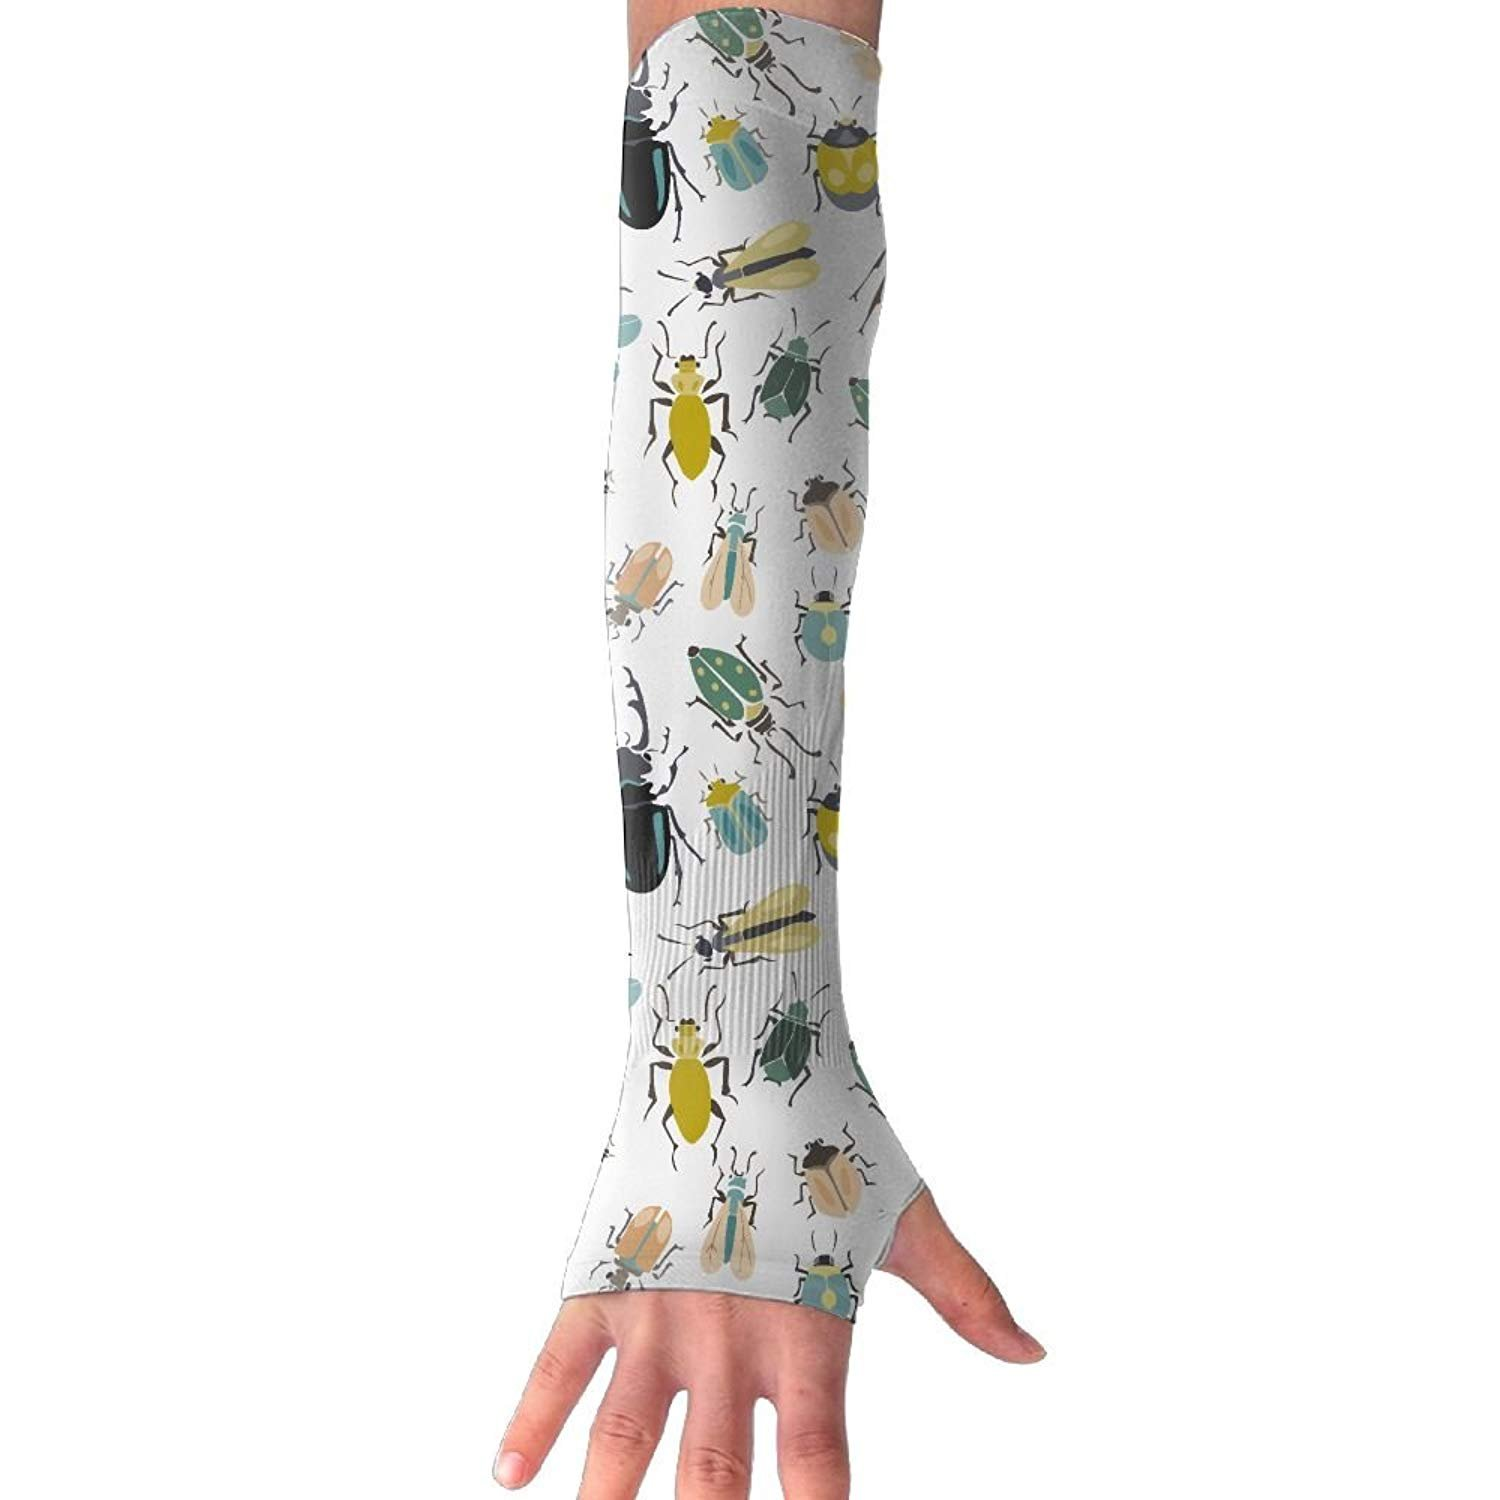 Unisex A Variety of Insect Sense Ice Outdoor Travel Arm Warmer Long Sleeves Glove